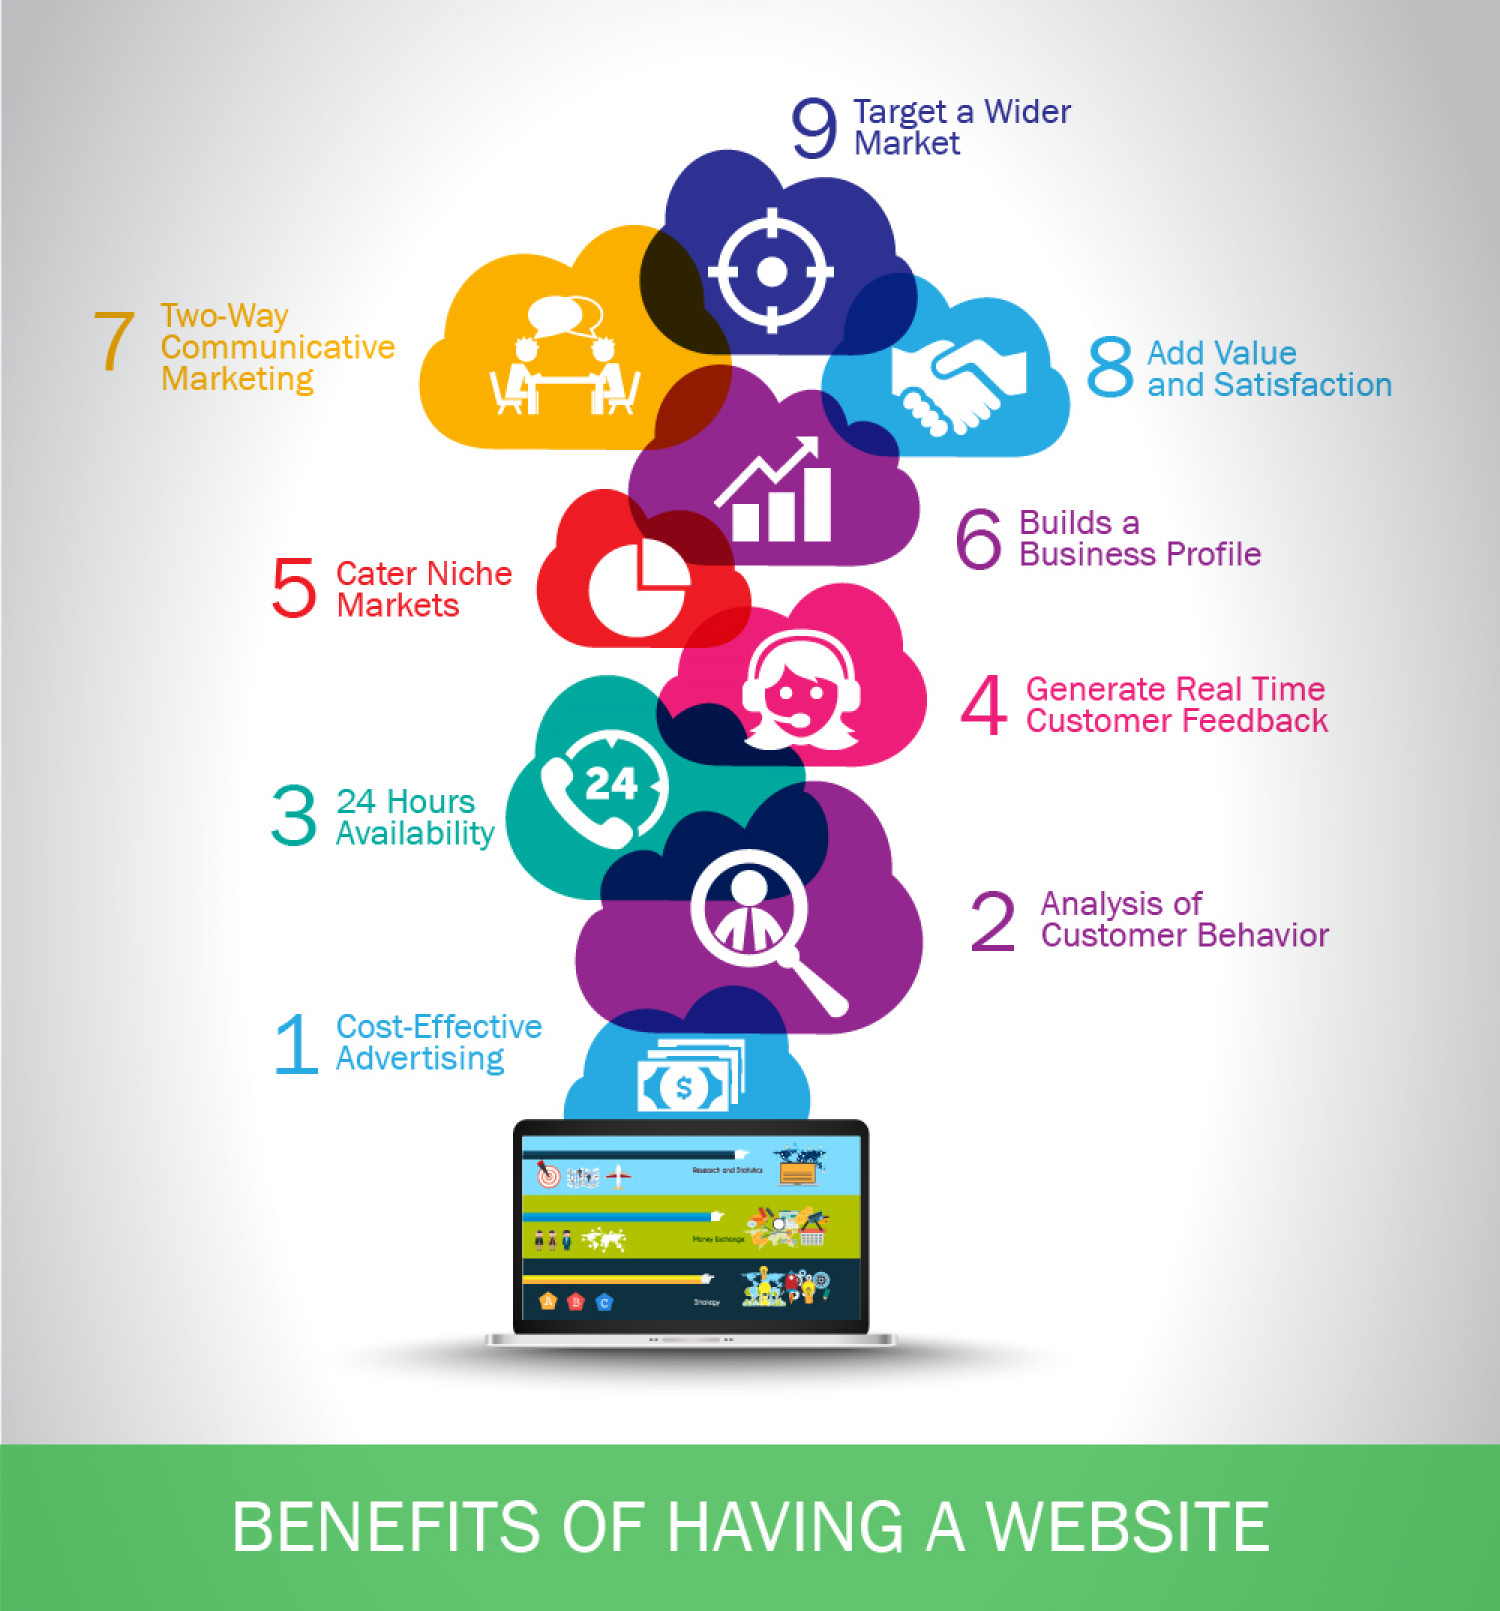 Benefits of Having a Website Infographic